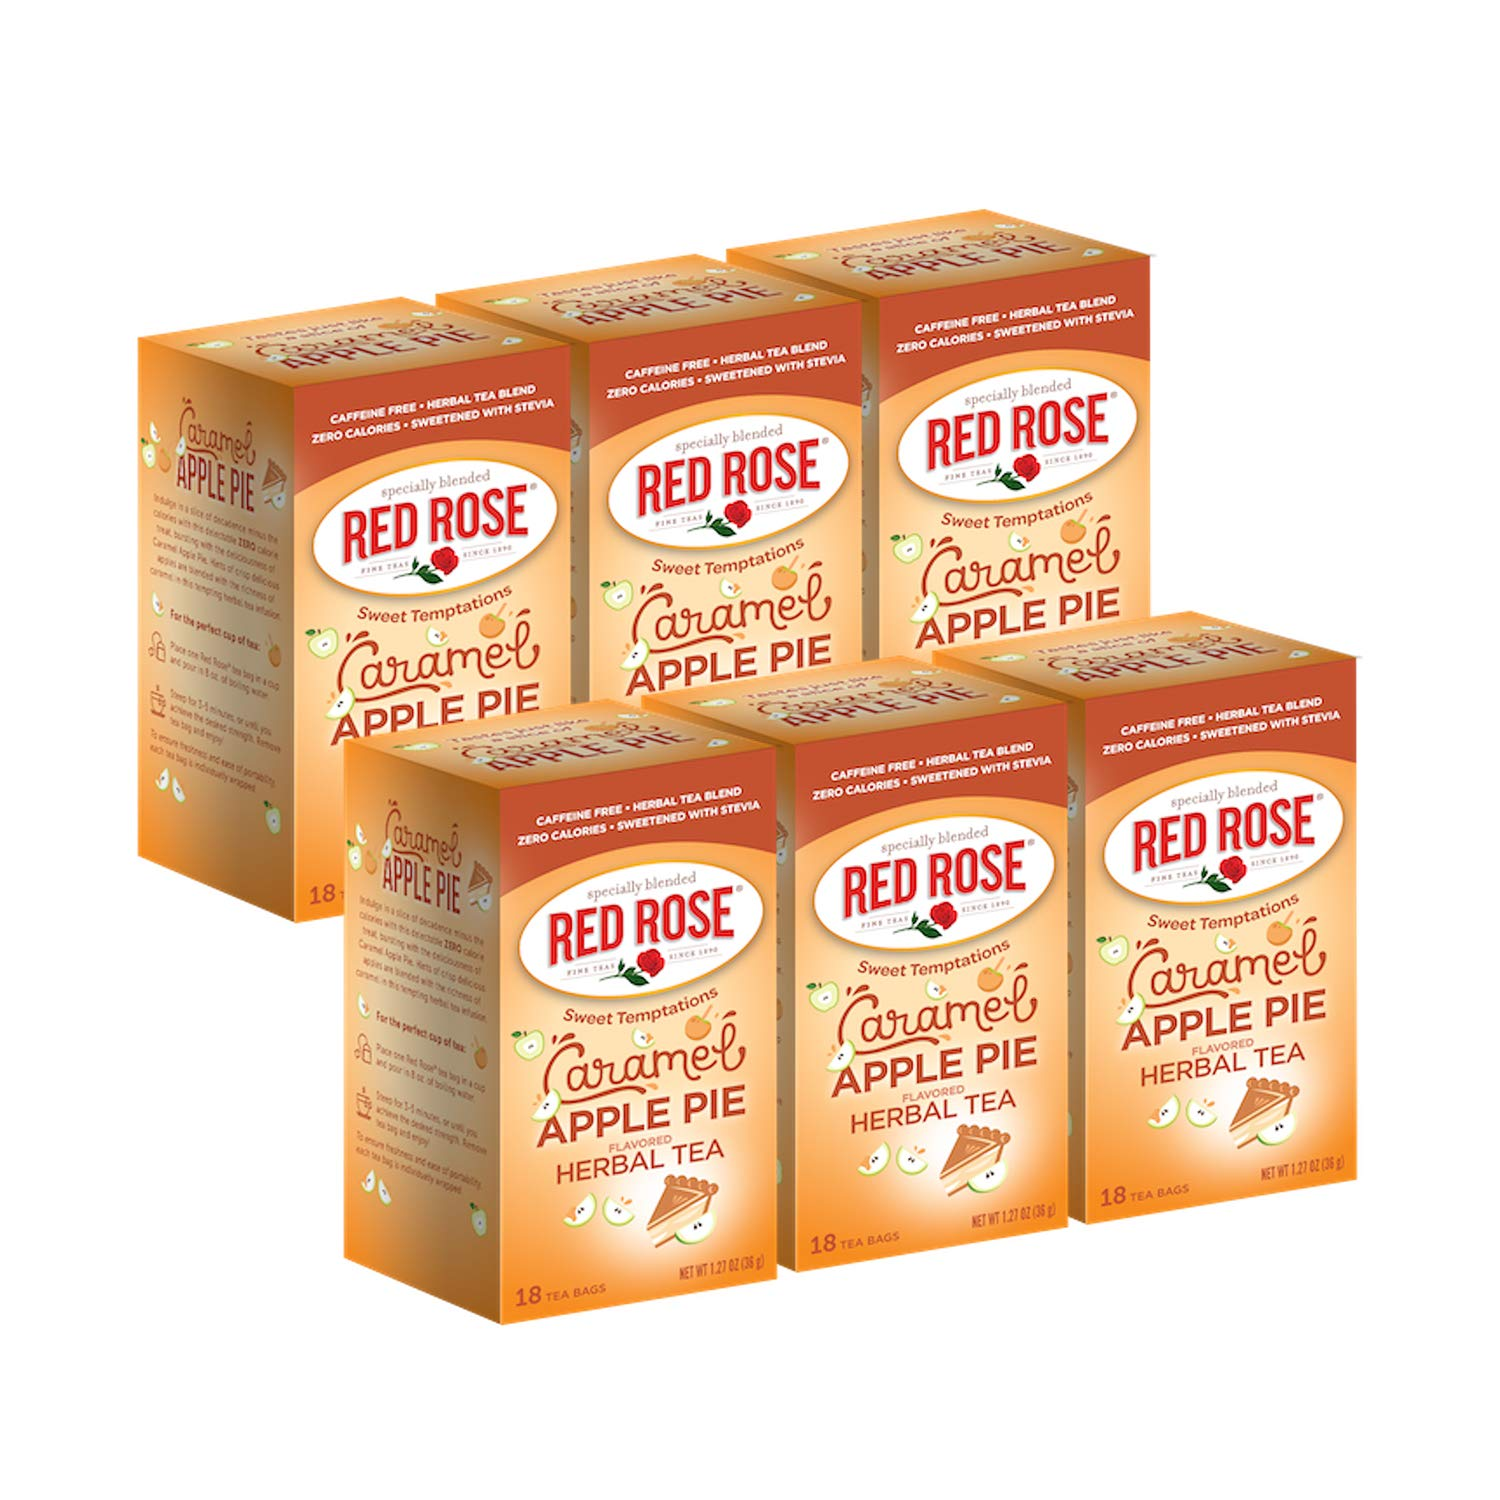 Red Rose Teas Sweet Temptations Tea, 6 Boxes of 18 (108 Tea Bags), Caramel Apple Pie